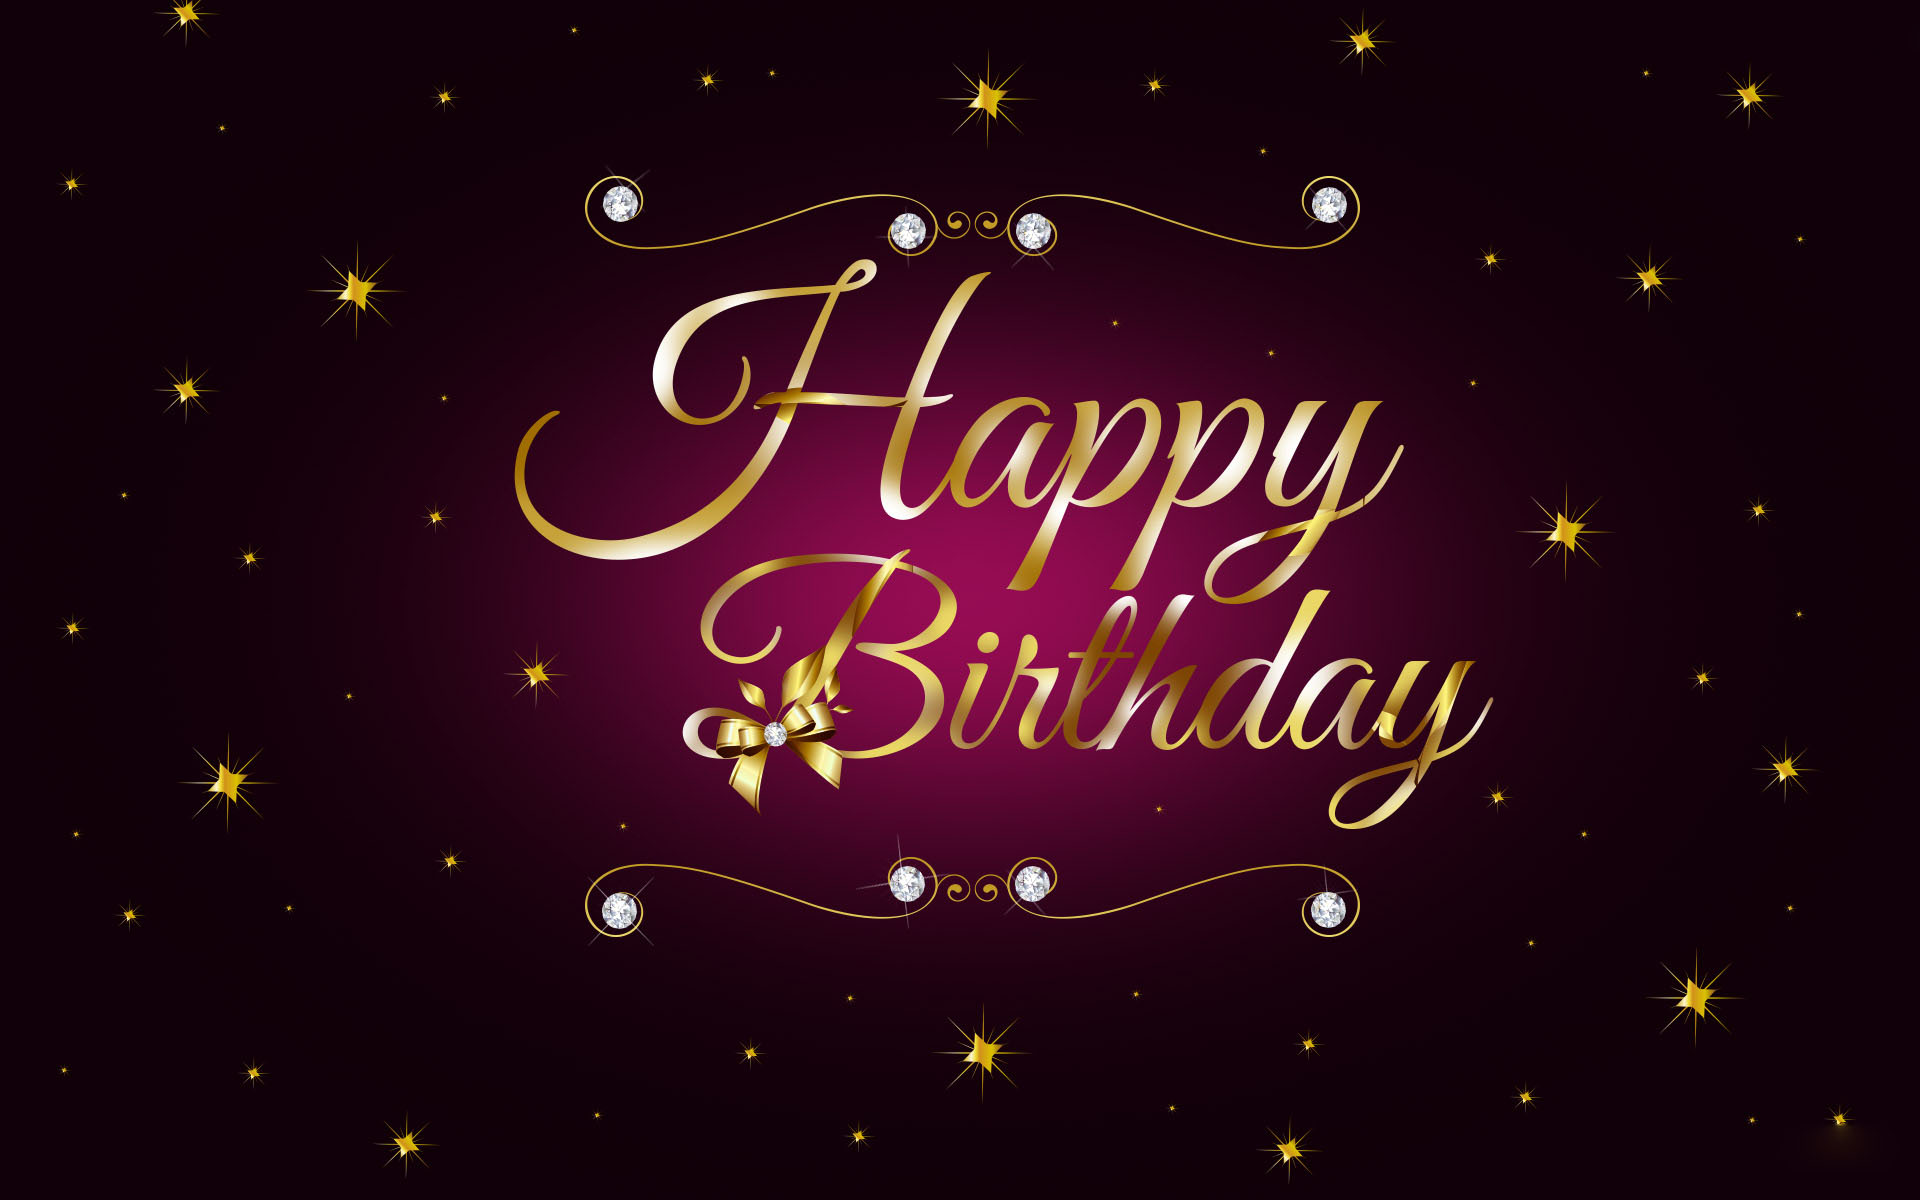 Download Free Happy Birthday Wishes HD Images For WhatsApp & Facebook